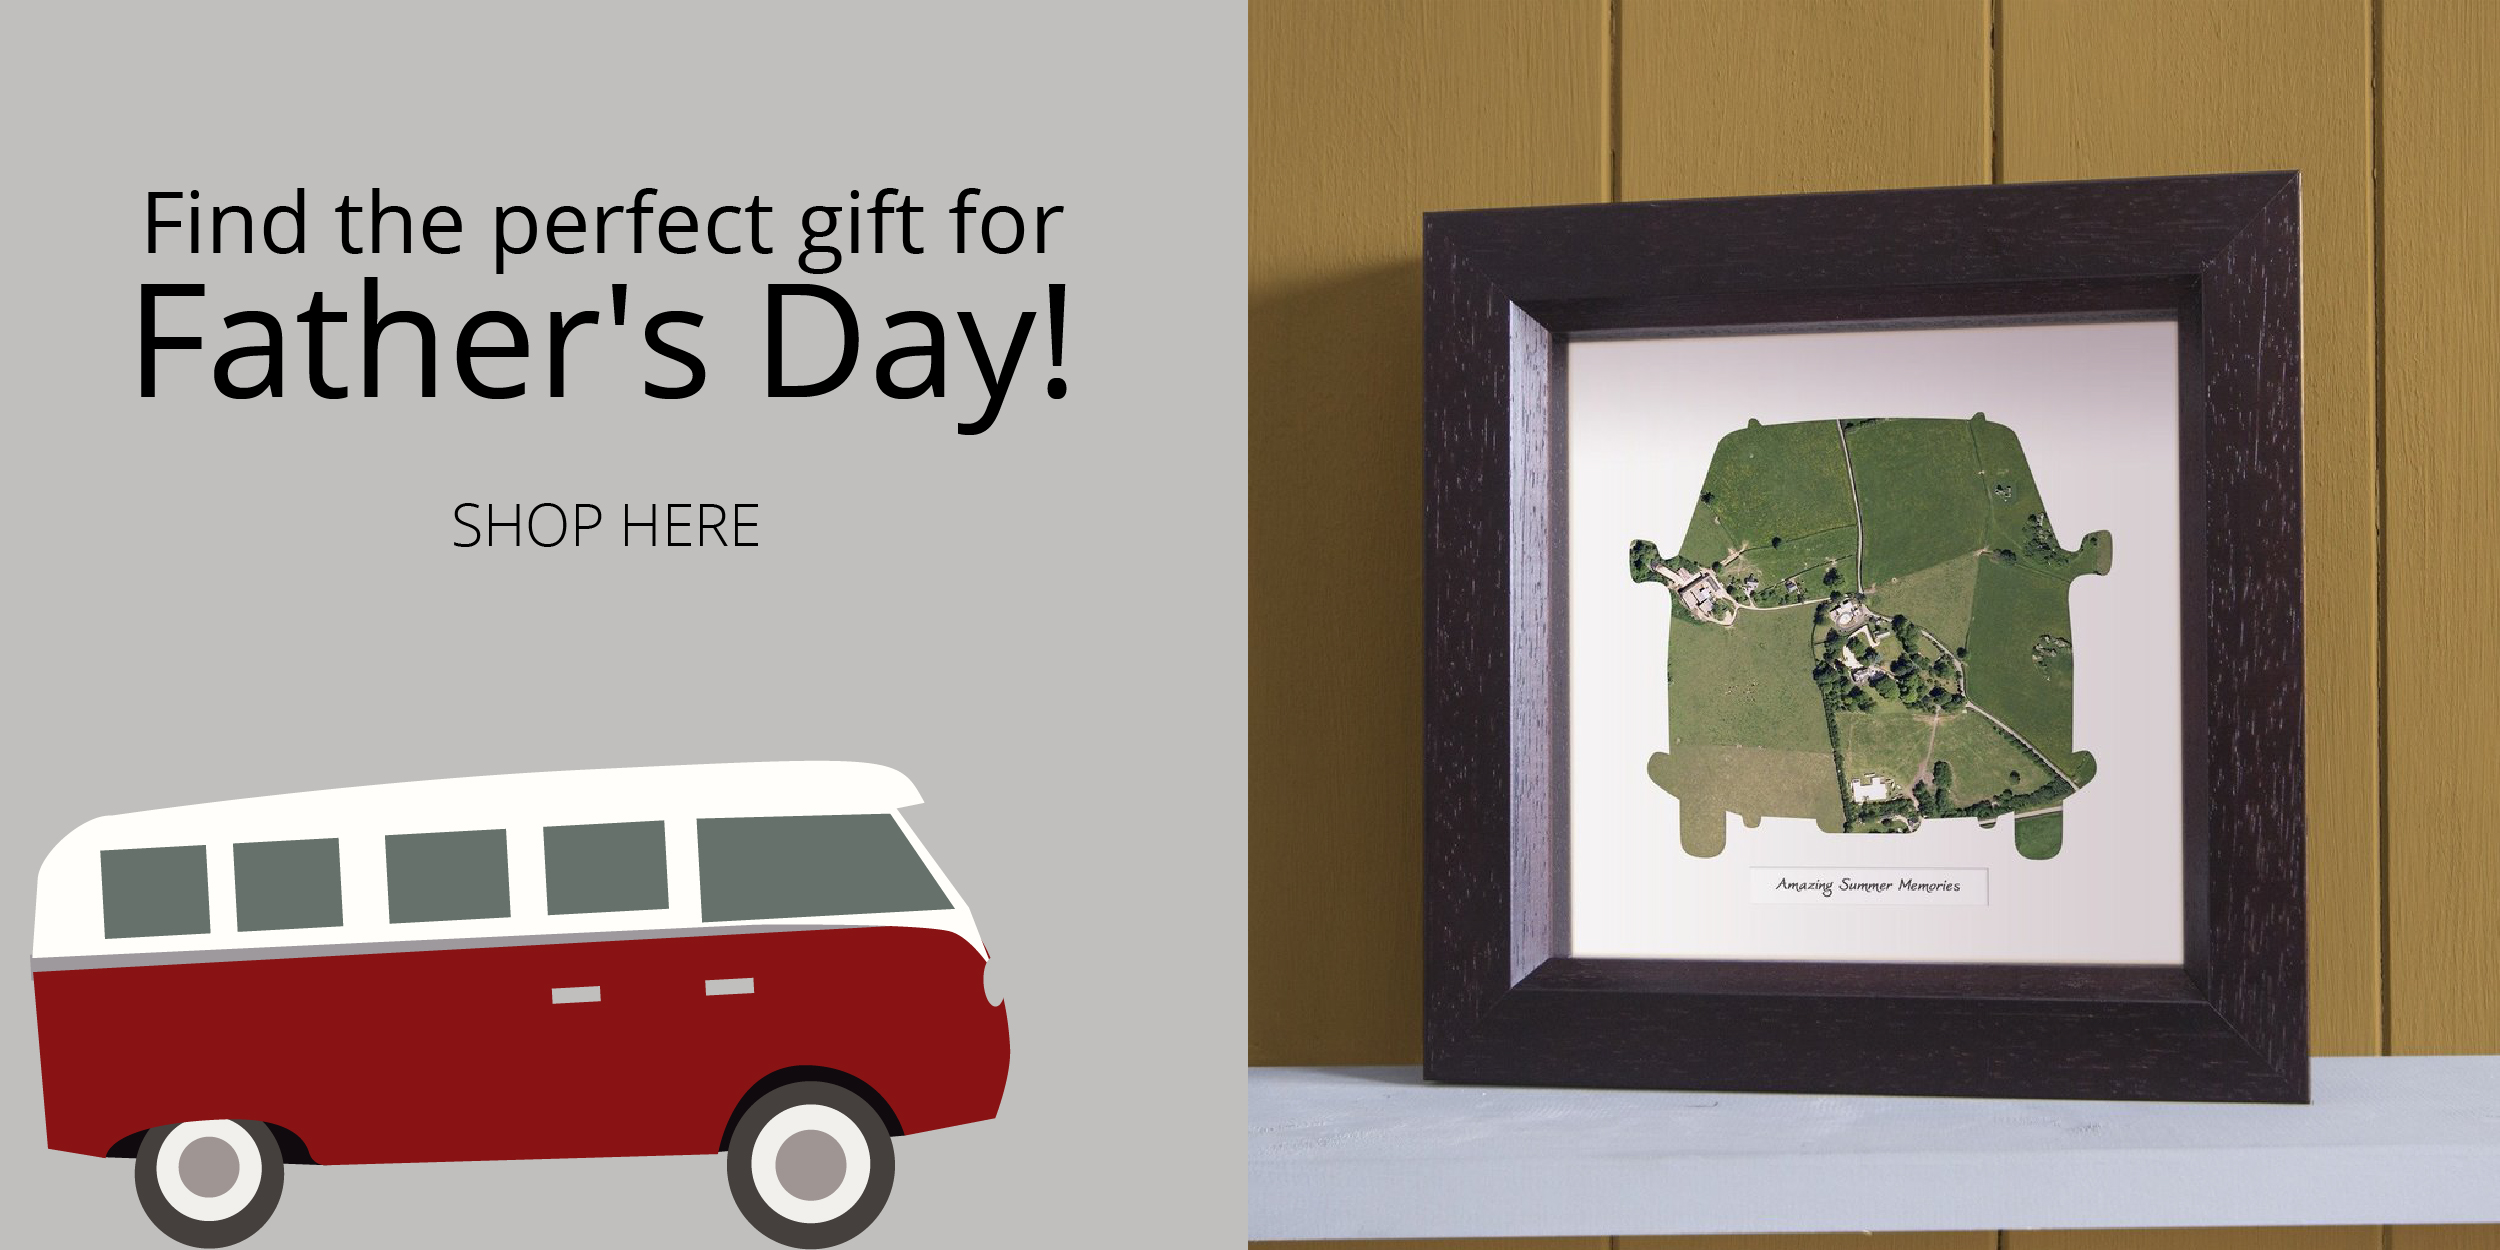 Find a gift for Father's Day